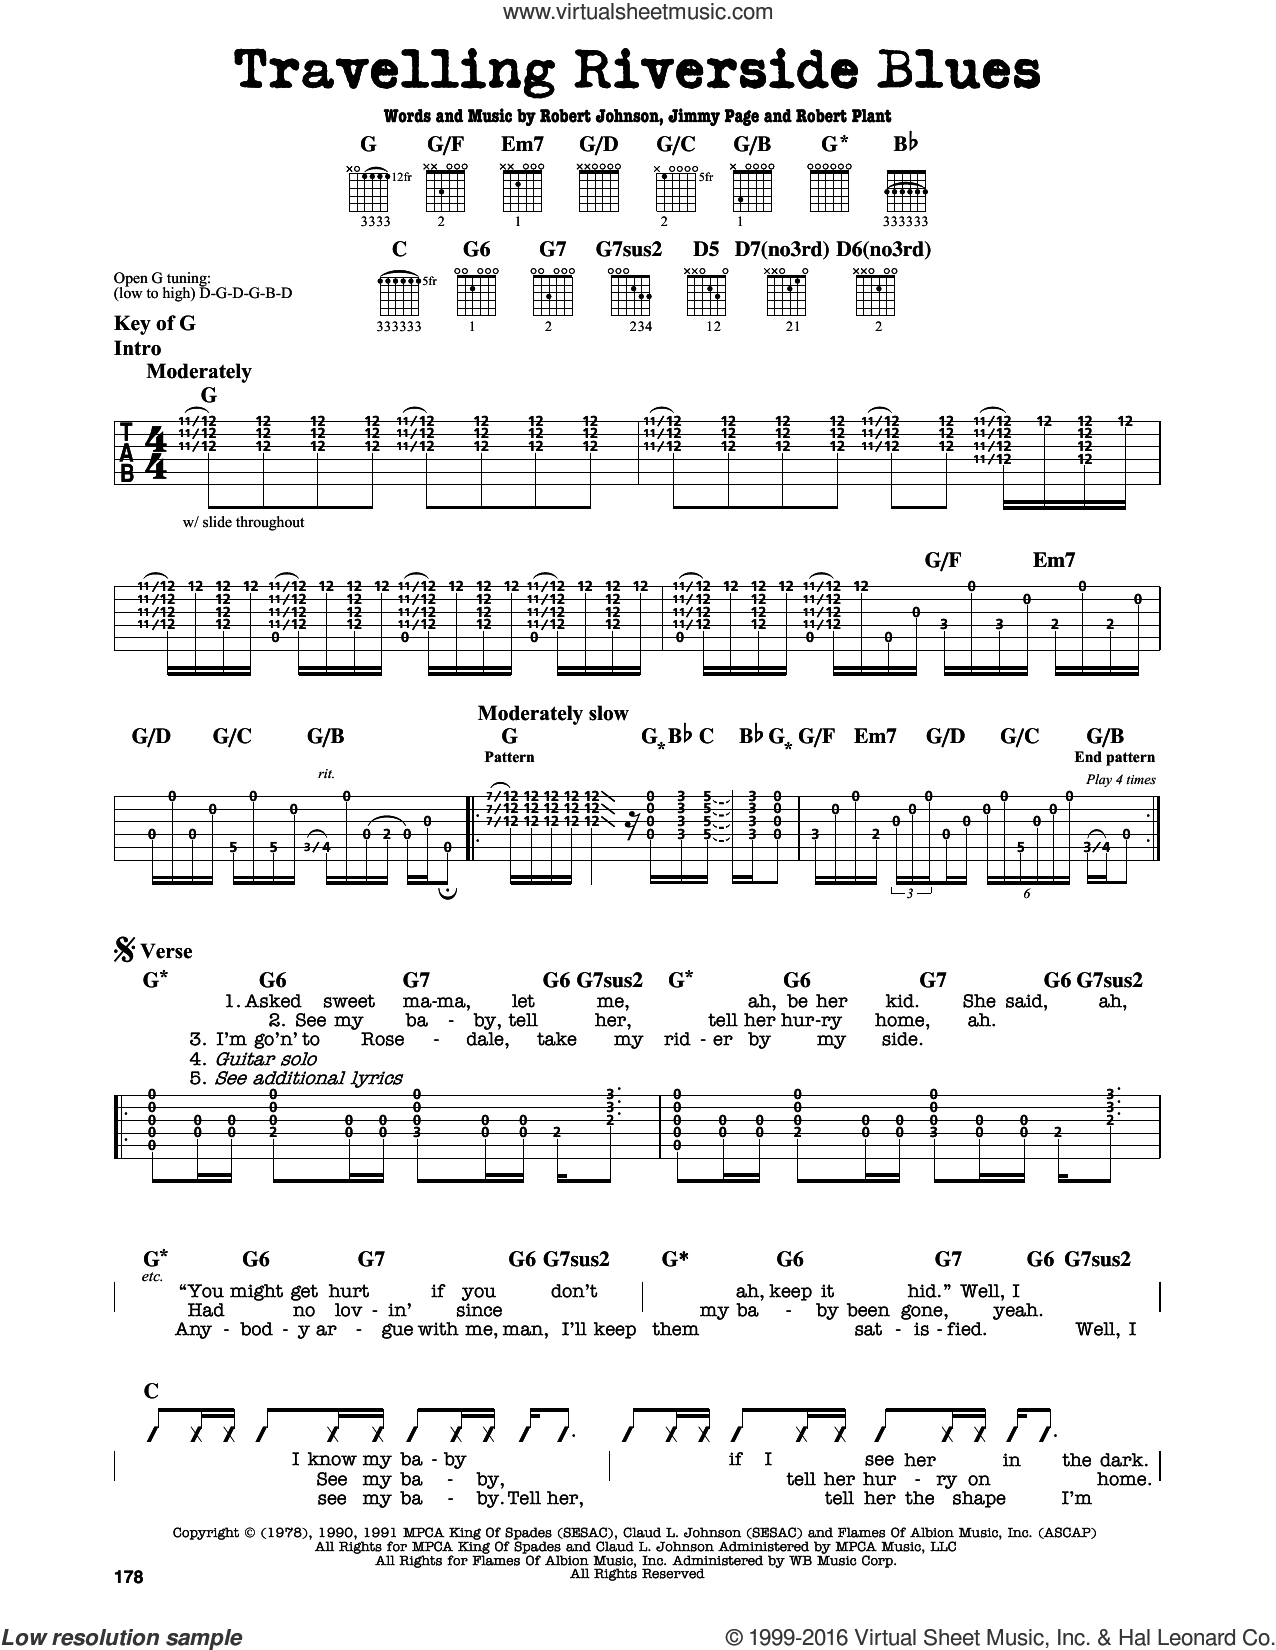 Travelling Riverside Blues sheet music for guitar solo (lead sheet) by Robert Plant, Led Zeppelin, Jimmy Page and Robert Johnson. Score Image Preview.